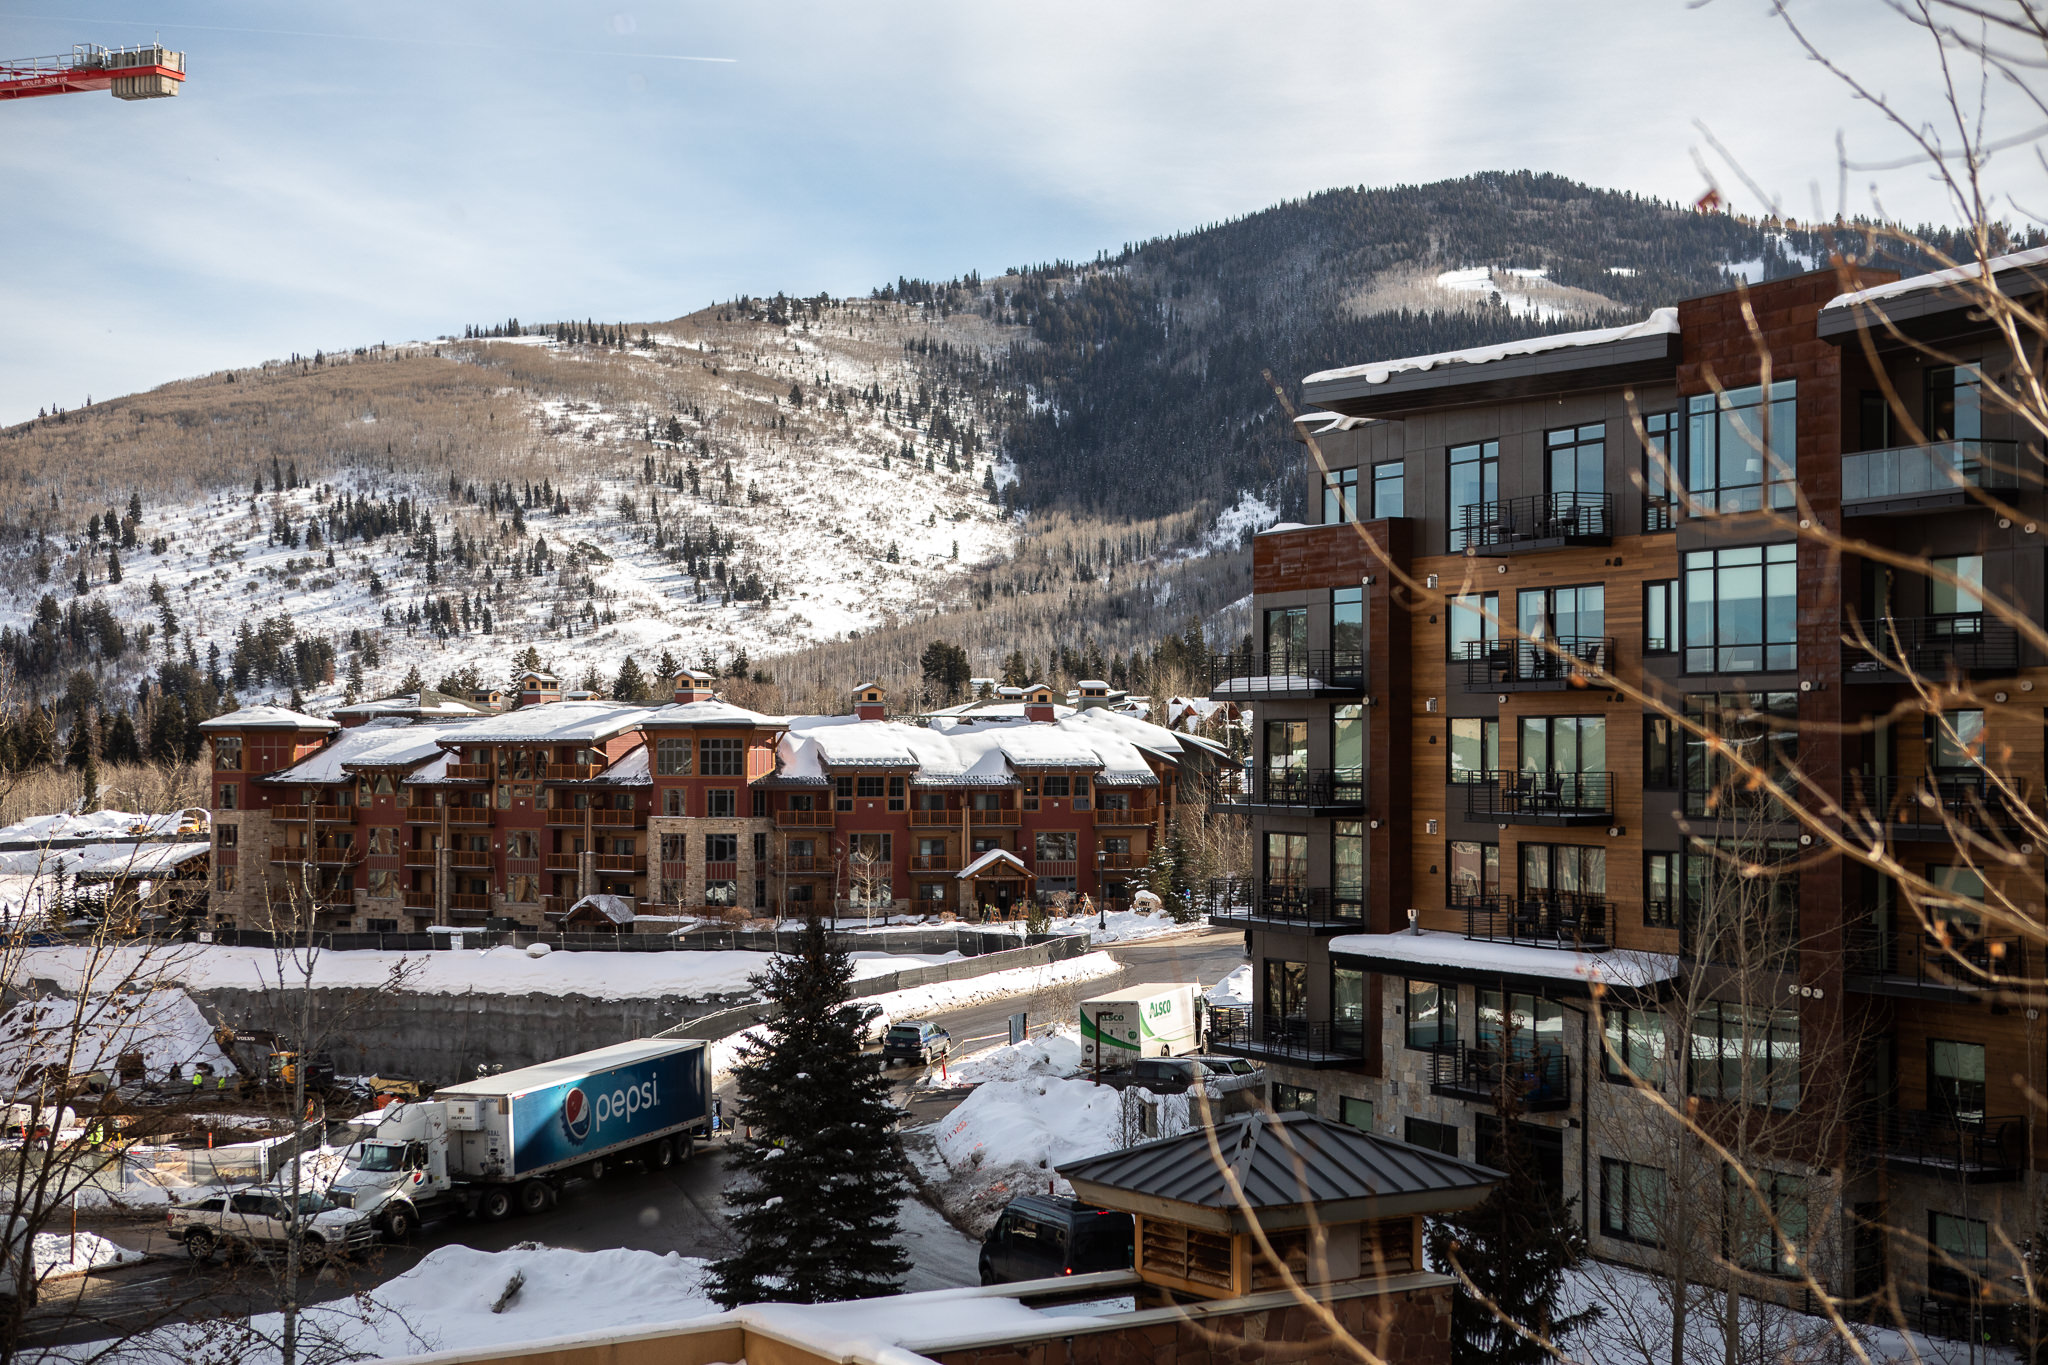 Park City Hyatt Centric Hotel in the Winter